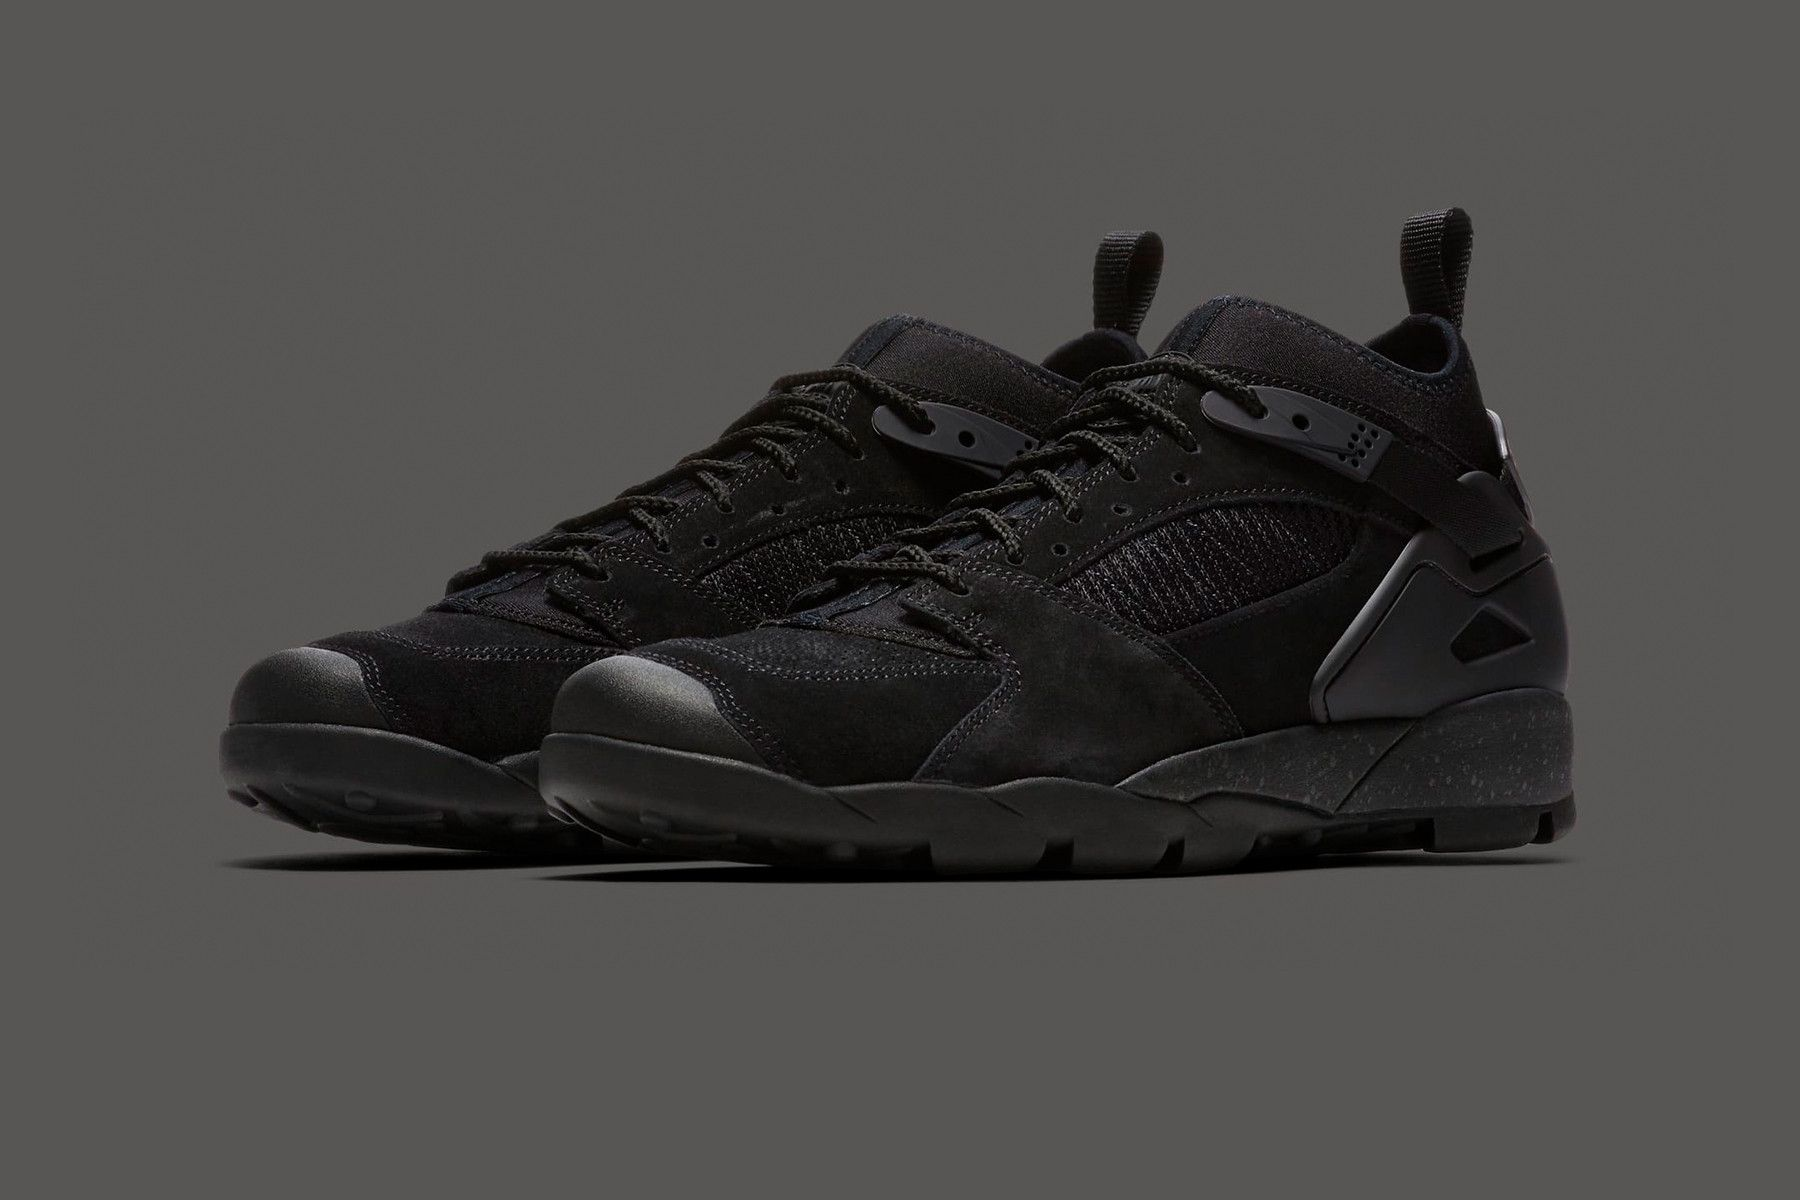 7a8c20e10e7 Nike's Classic '90s ACG Air Revaderchi Receives an Official Release ...